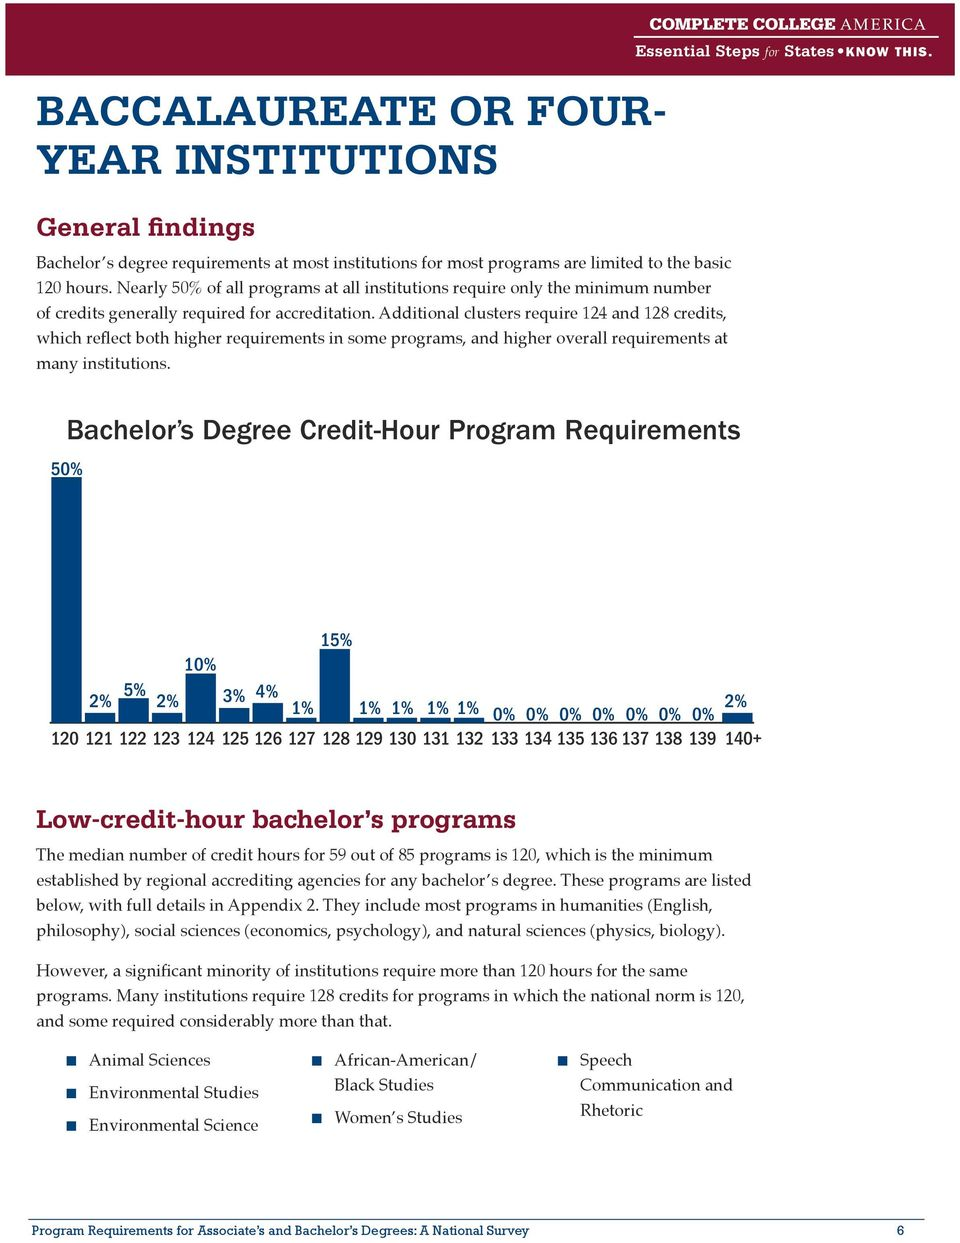 Additional clusters require 124 and 128 credits, which reflect both higher requirements in some programs, and higher overall requirements at many institutions. Essential Steps for States Know this.